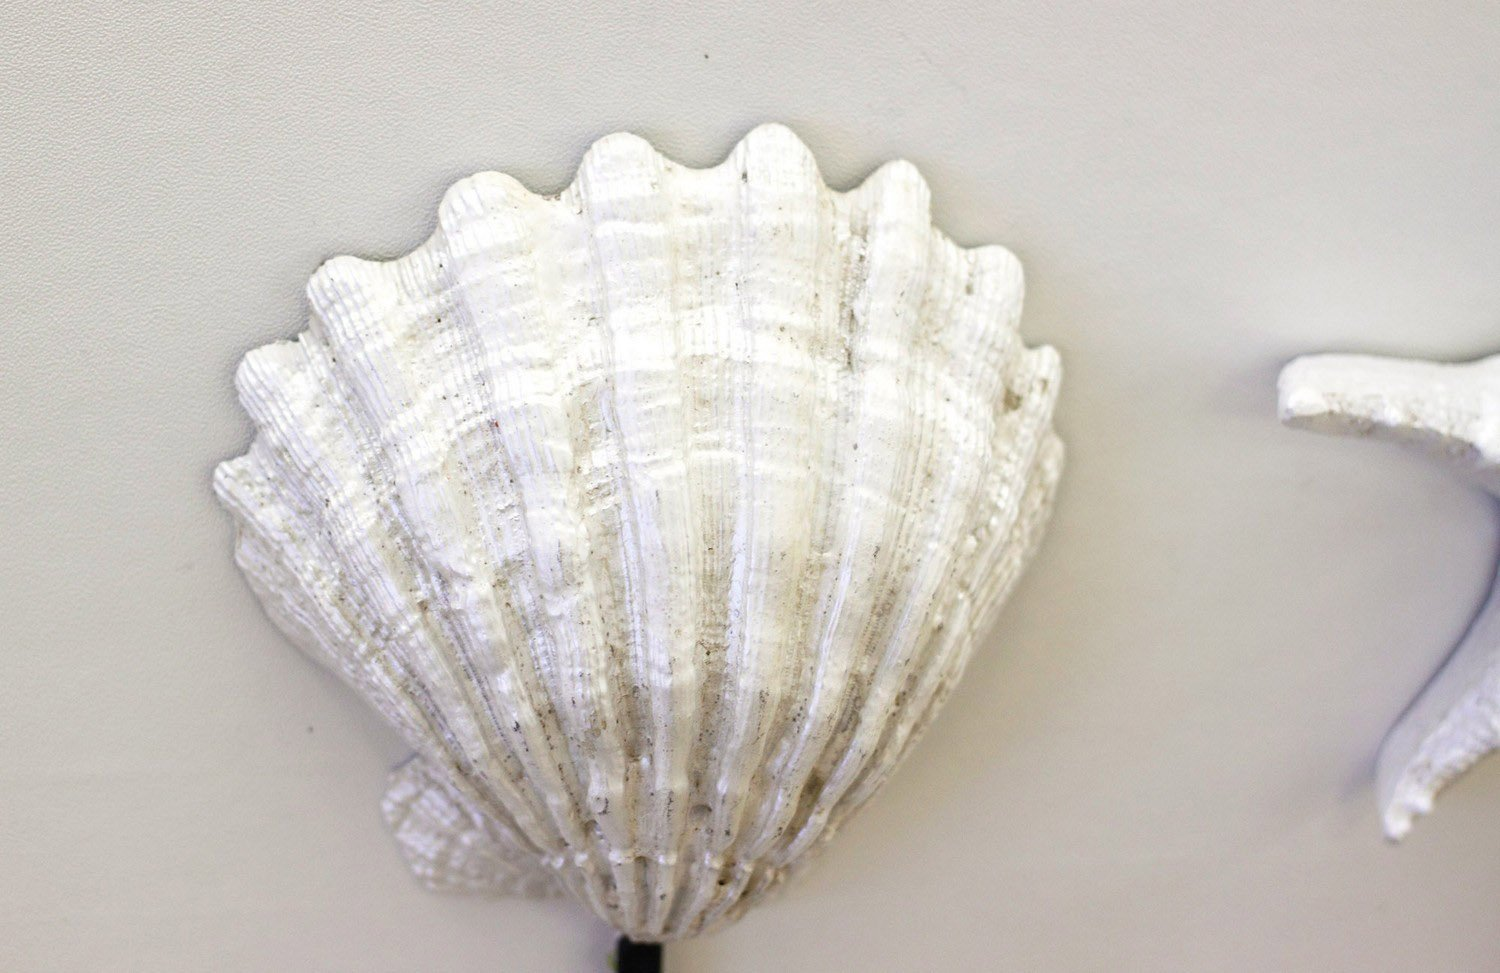 Art Scallop Shell Pieces Drip-Dry